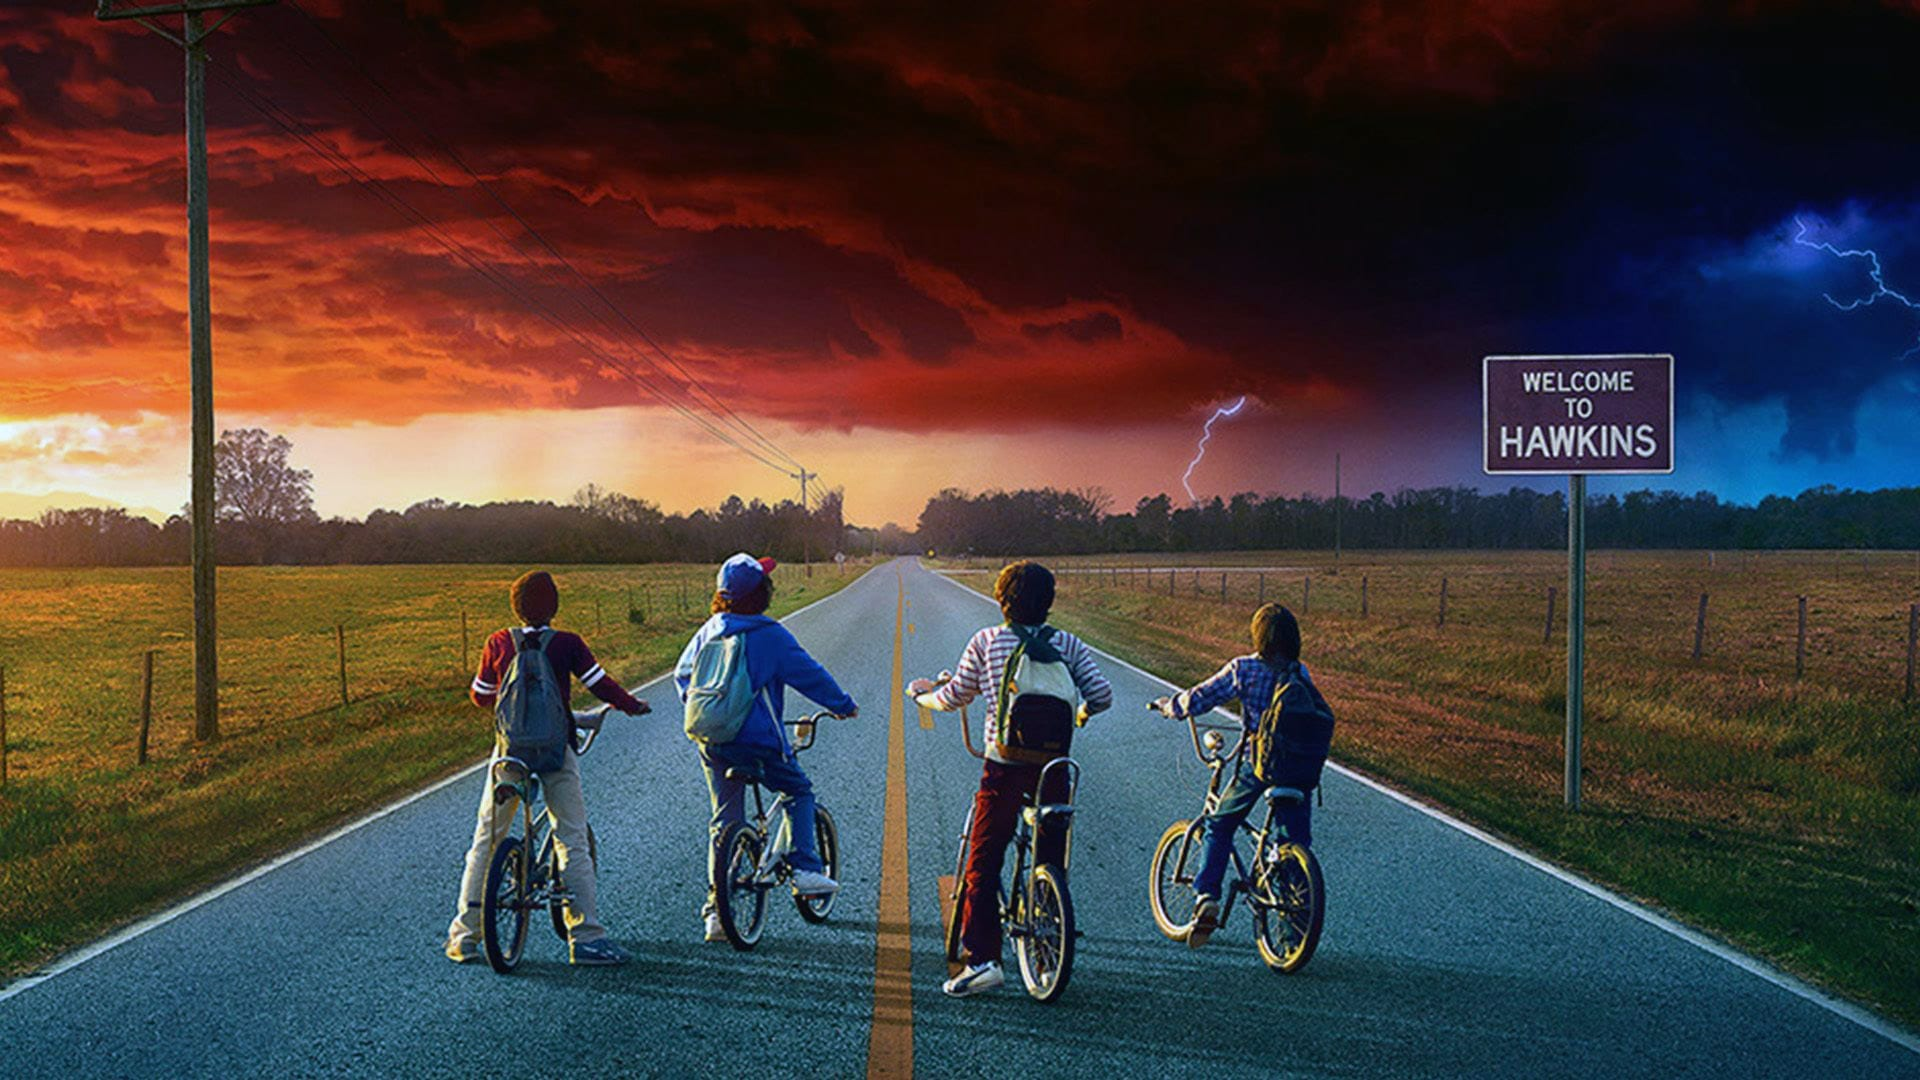 stranger-things-2-epic-banner